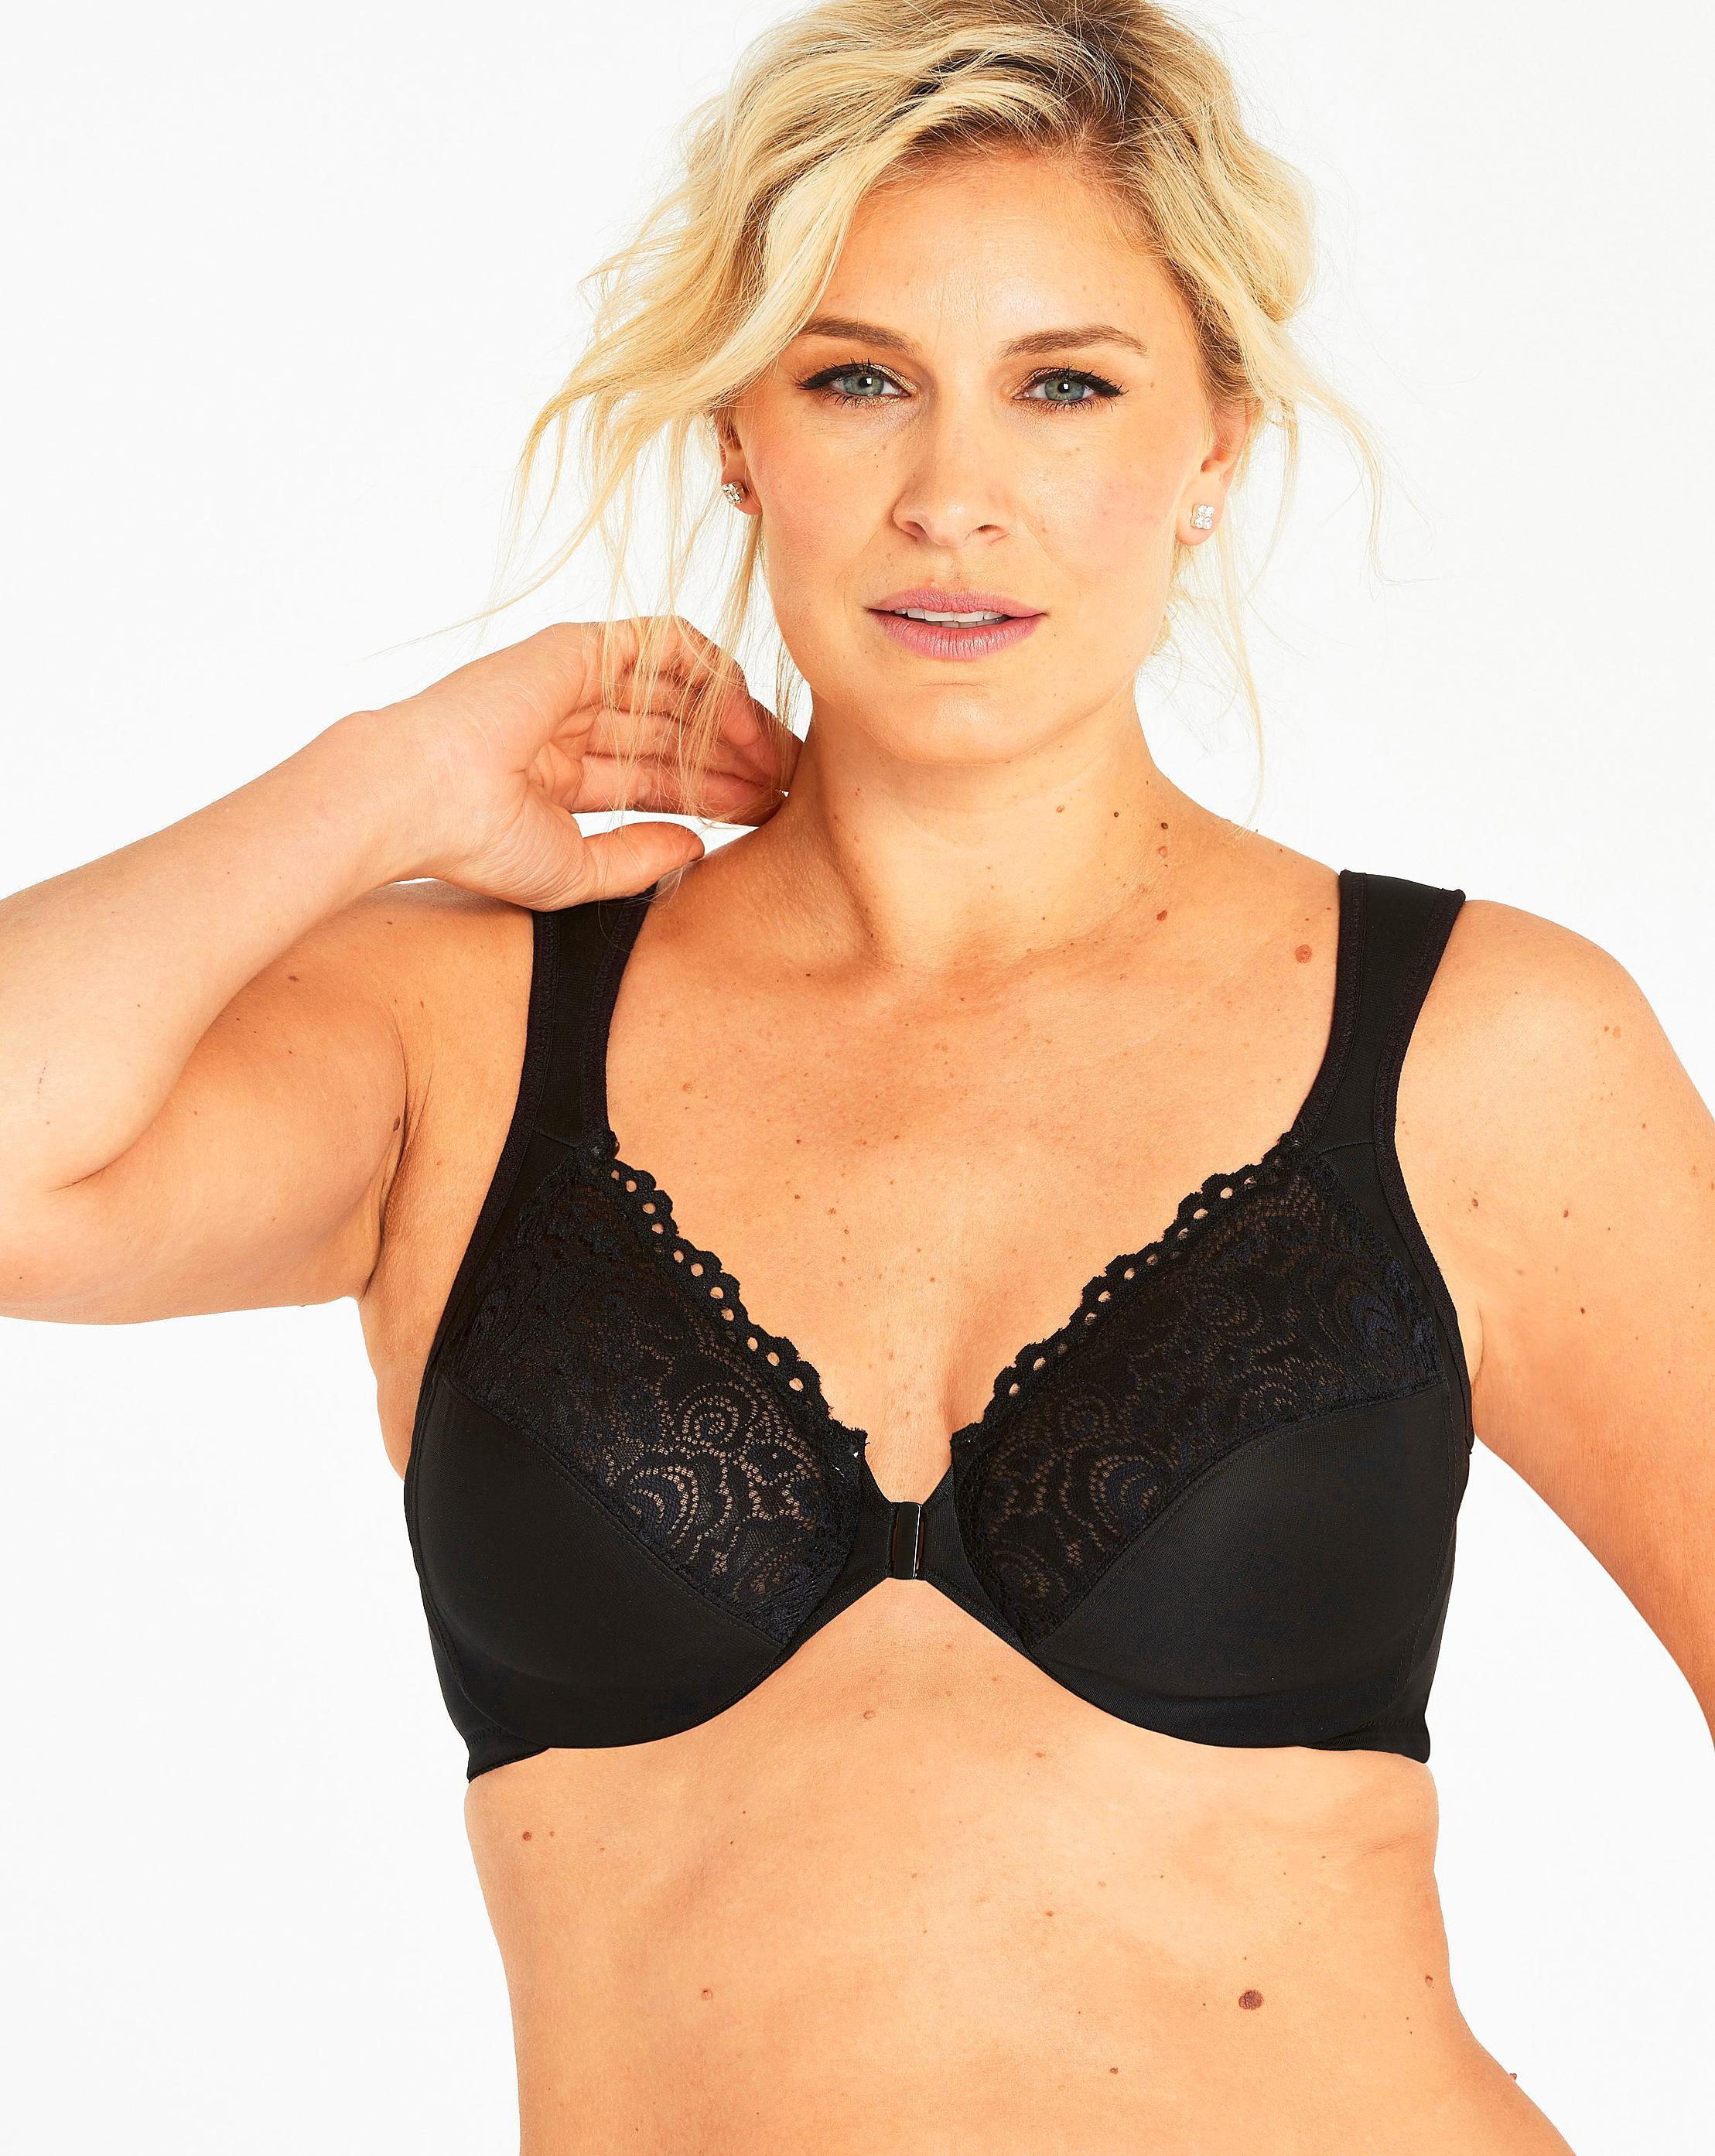 d66360f4491c9 Lyst - Simply Be Glamorise Elegance Front Fastening Bra in Black